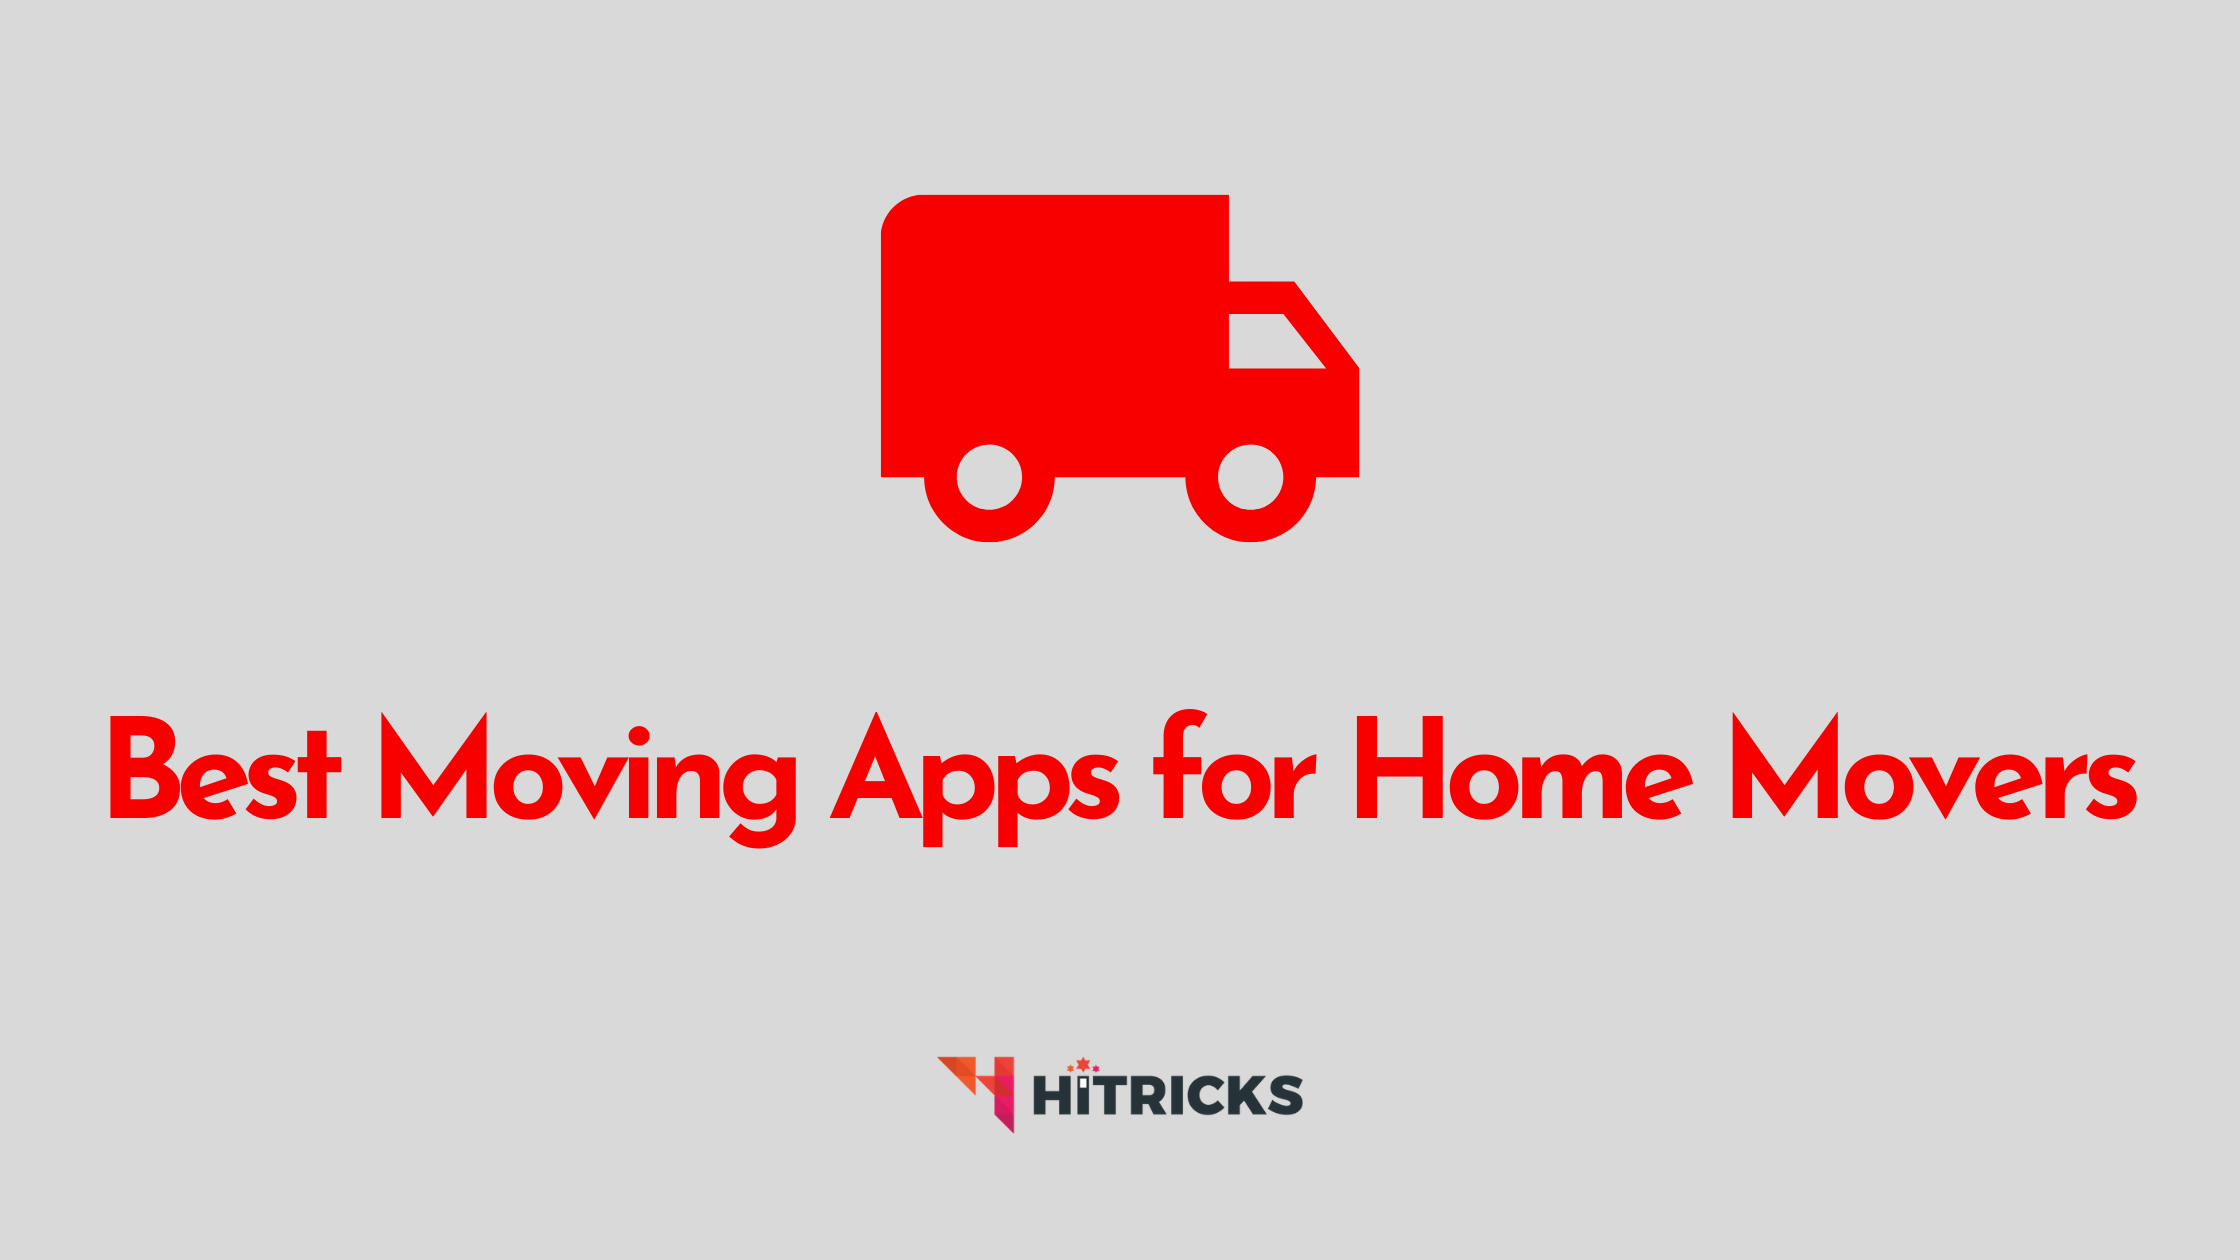 The Best Moving Apps For Home Movers